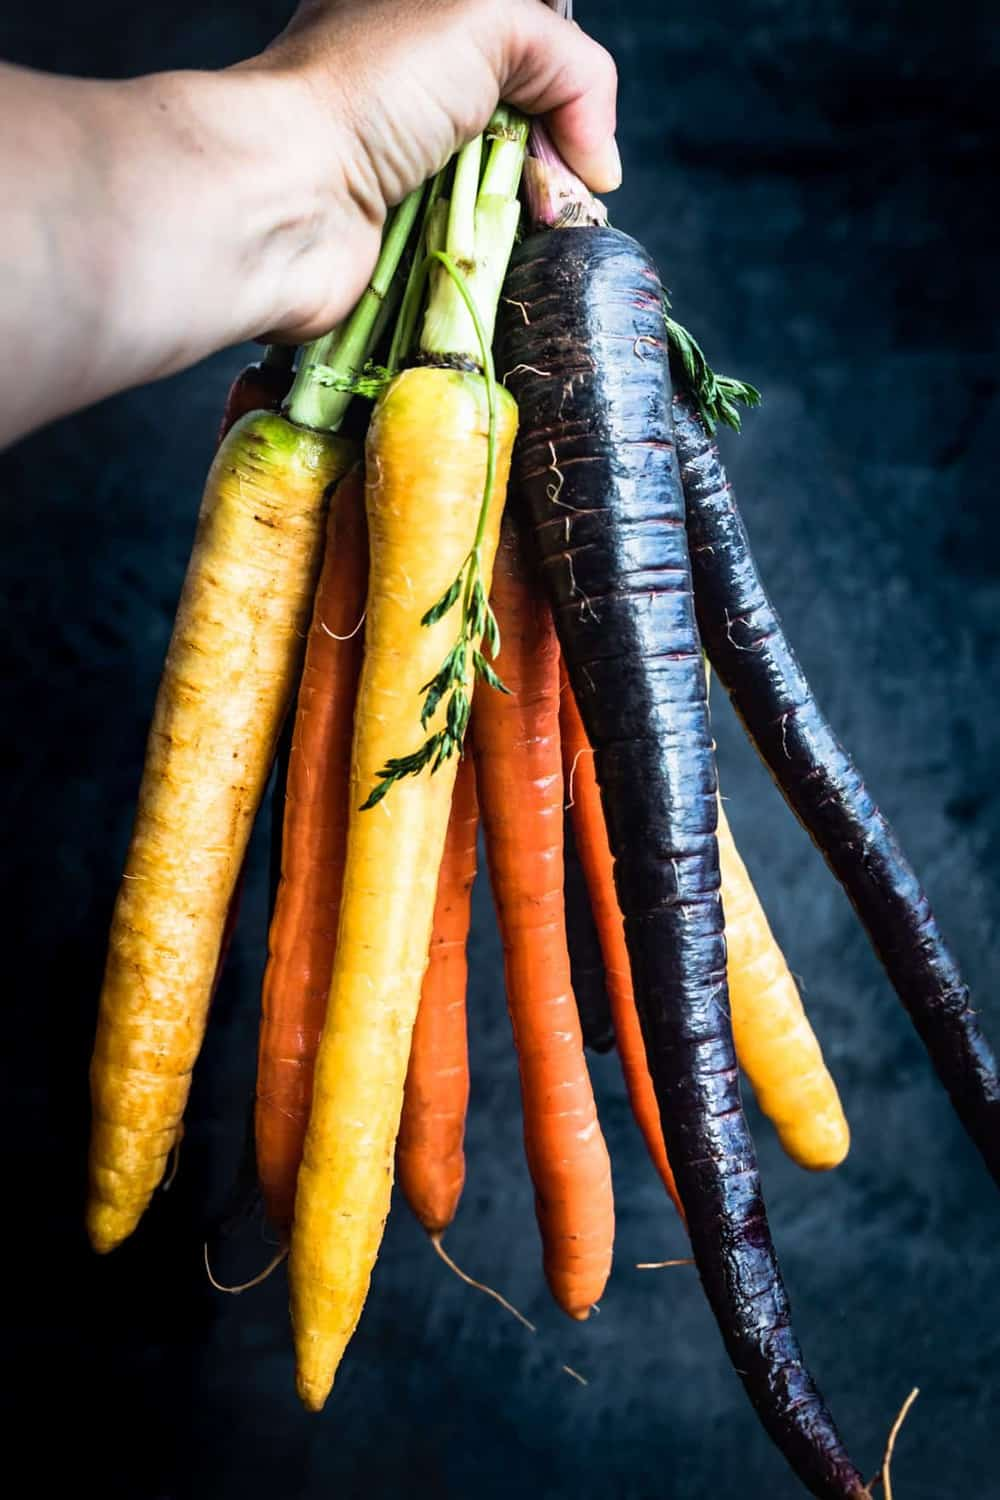 Holding rainbow carrots, on a black background.